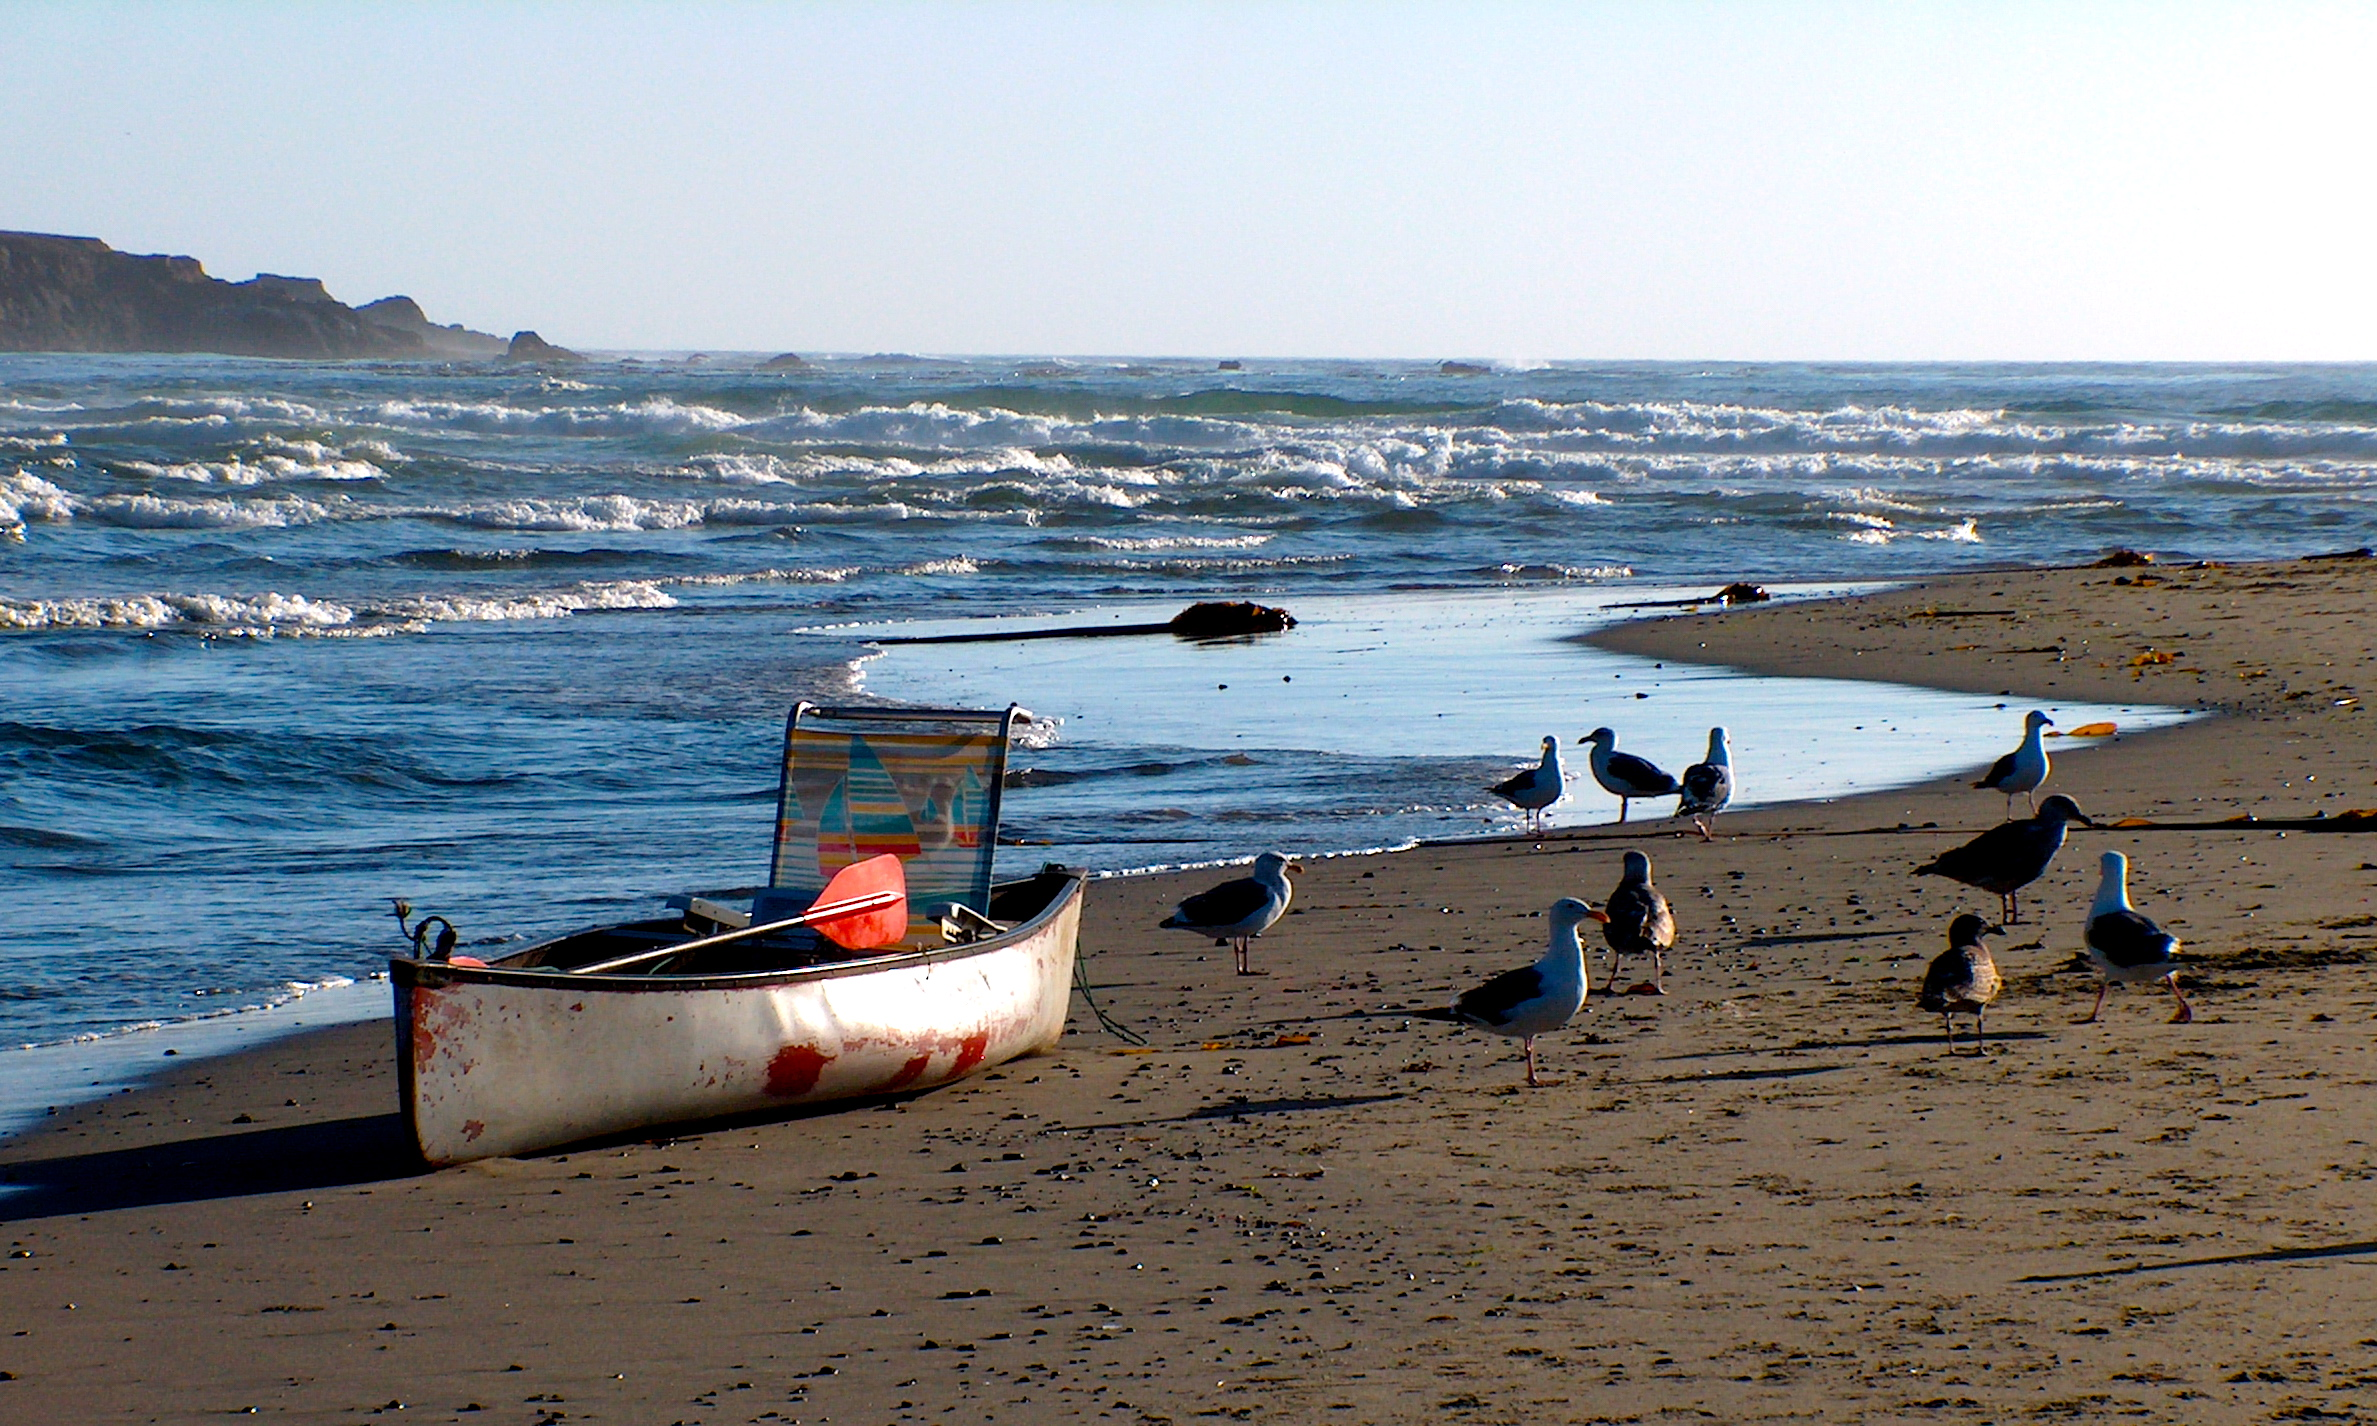 Canoe Beached At River Beach In Mendocino